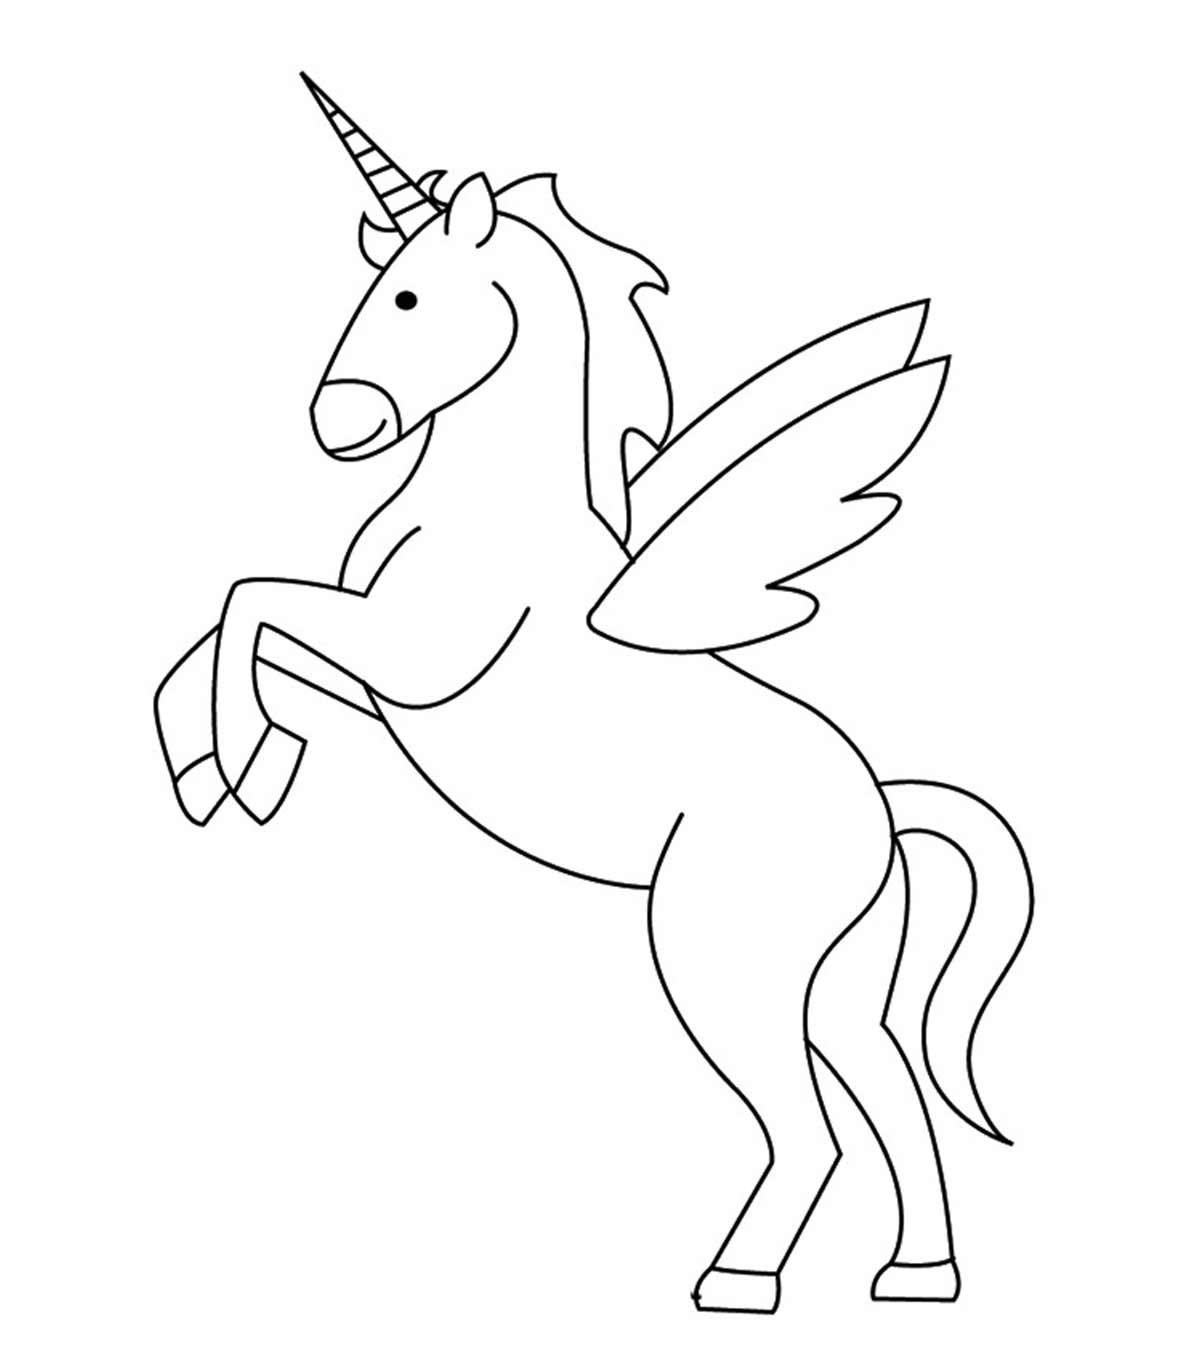 Cute Unicorn Face Coloring Pages in 2020 Unicorn